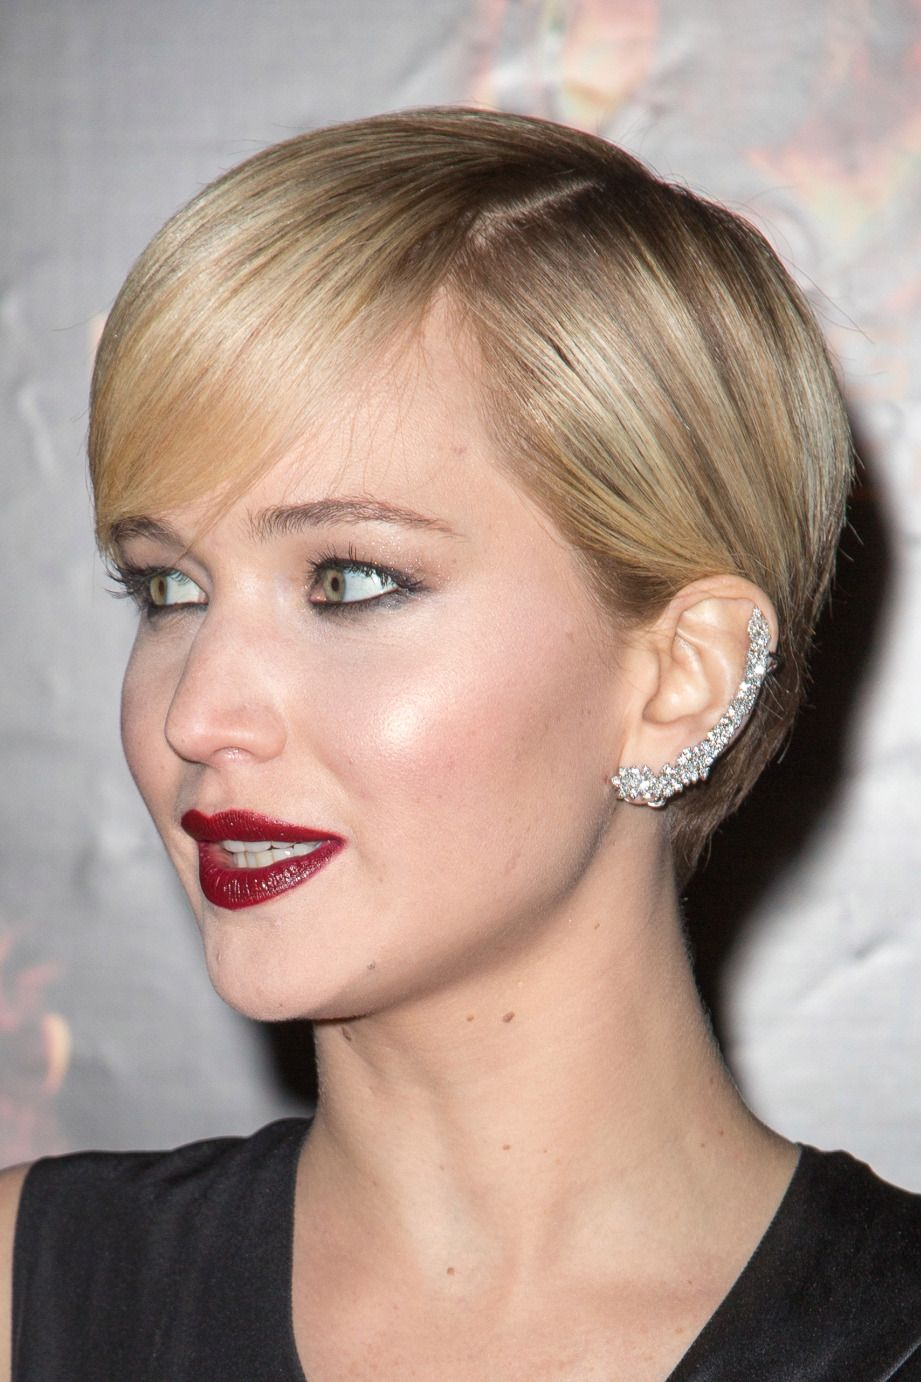 Want a sparkling ear cuff inspired by jennifer lawrence for less